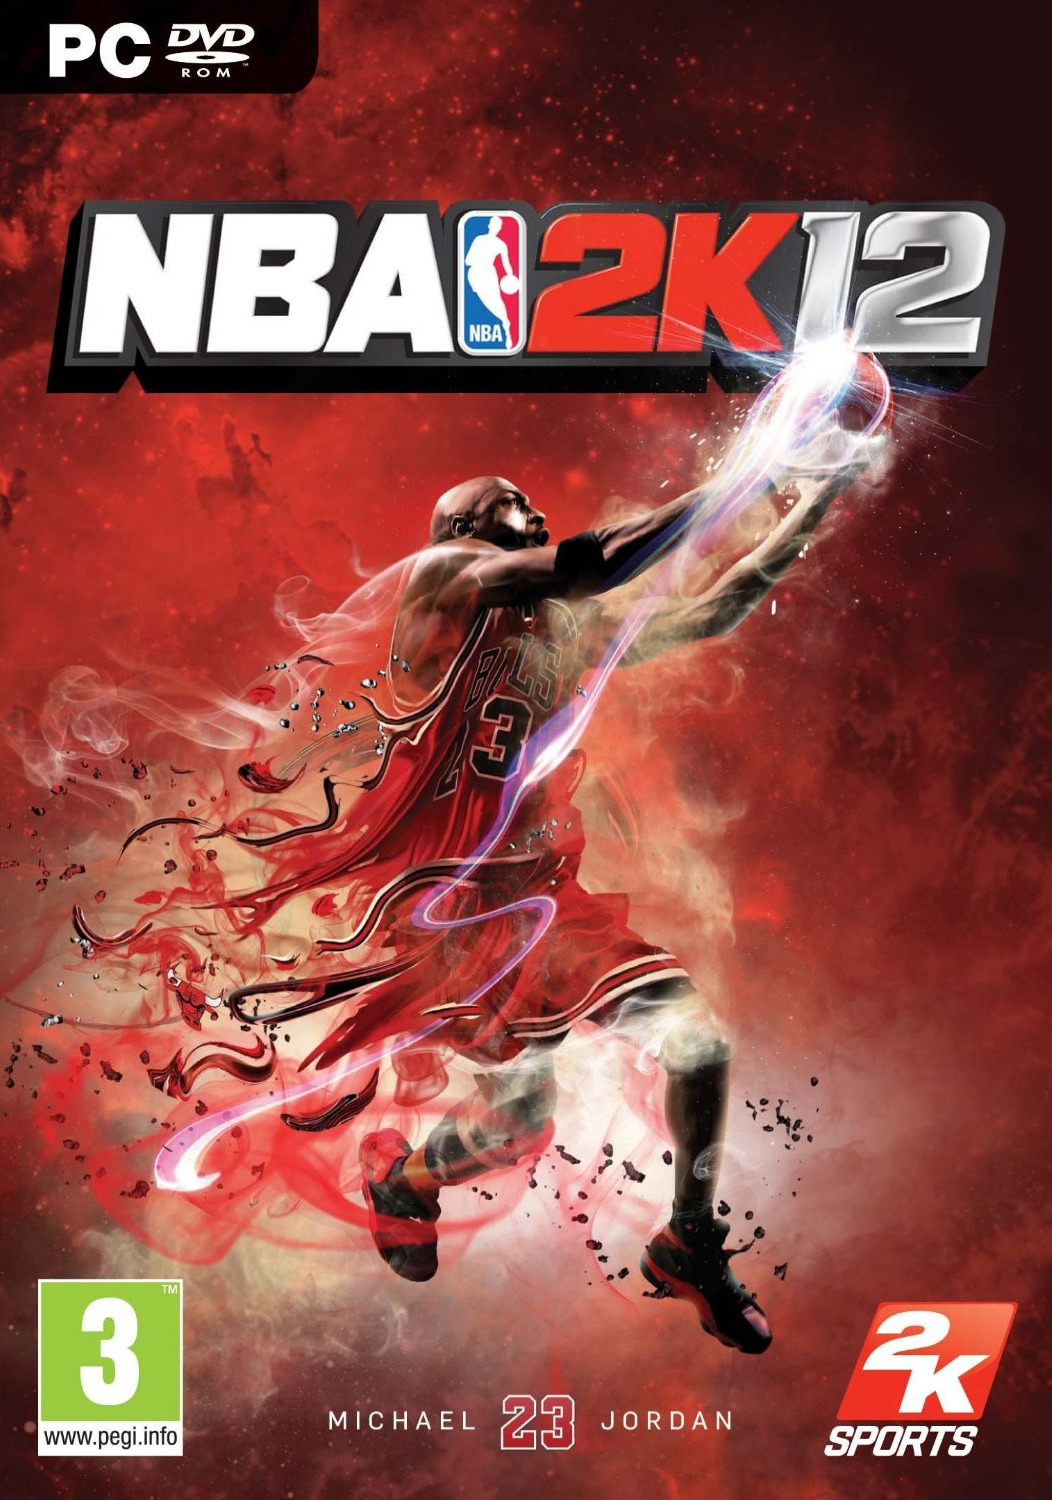 [MULTI] NBA 2K12-RELOADED